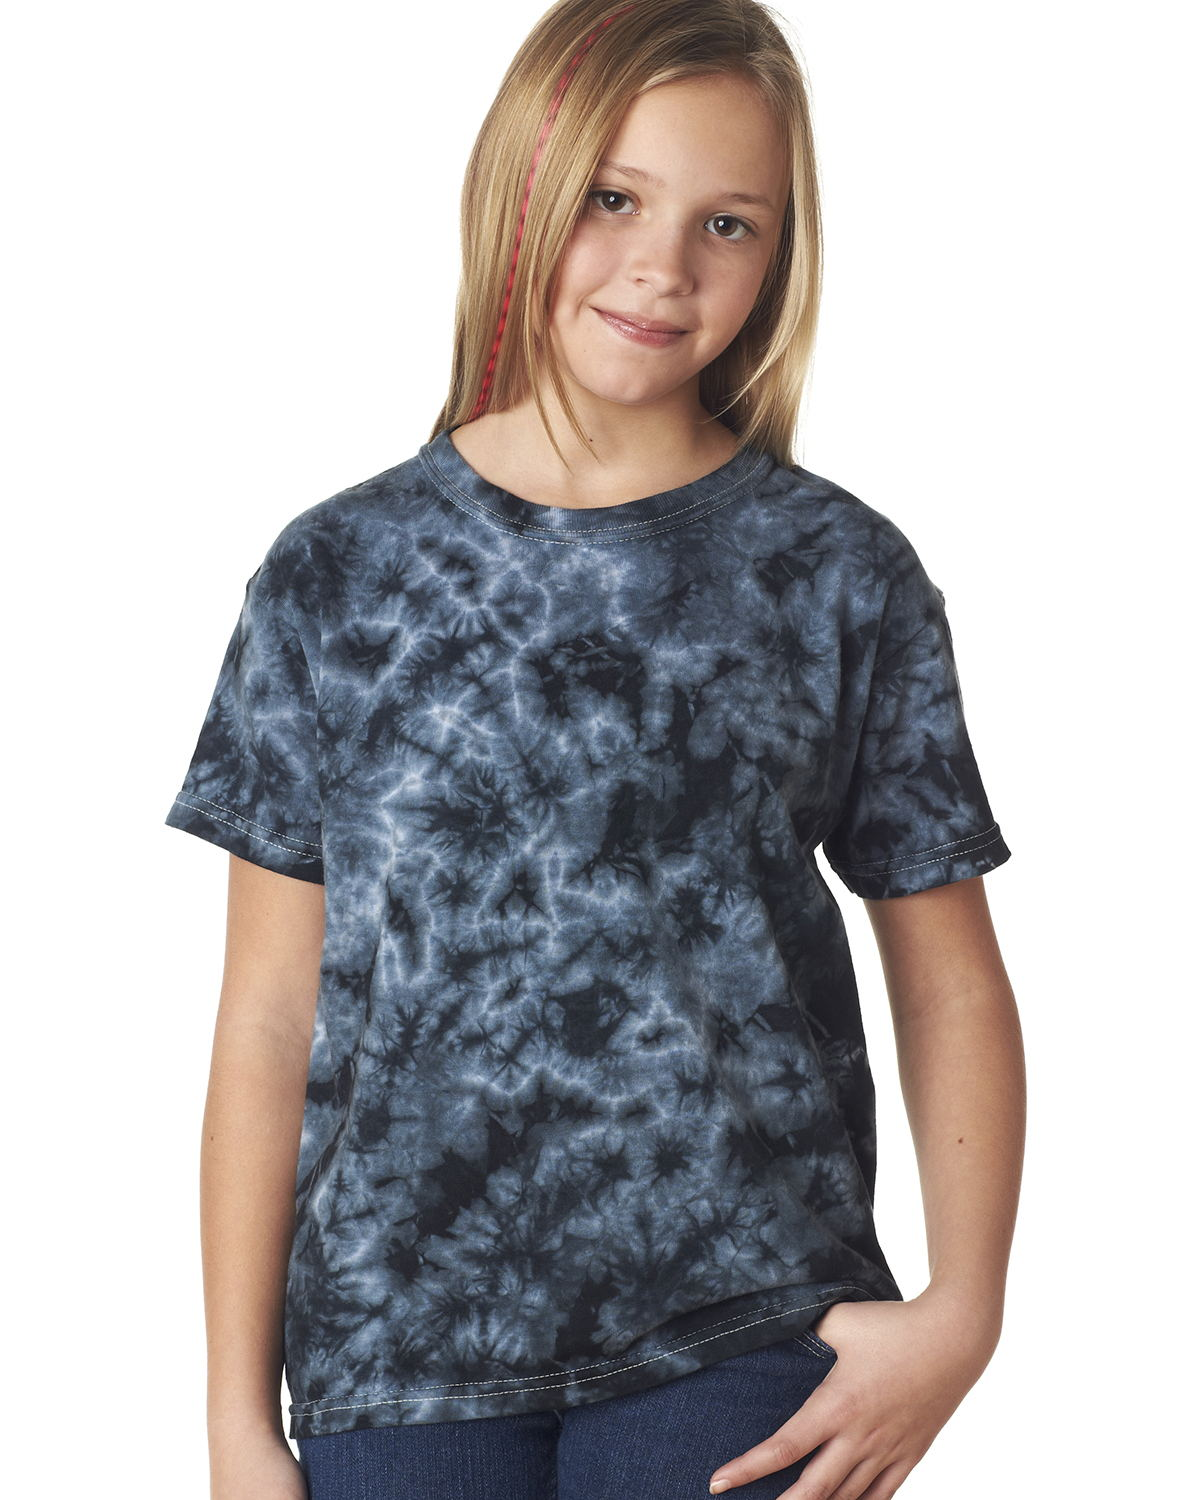 Tie-Dyed 20BCR - Youth Crystals T-Shirt